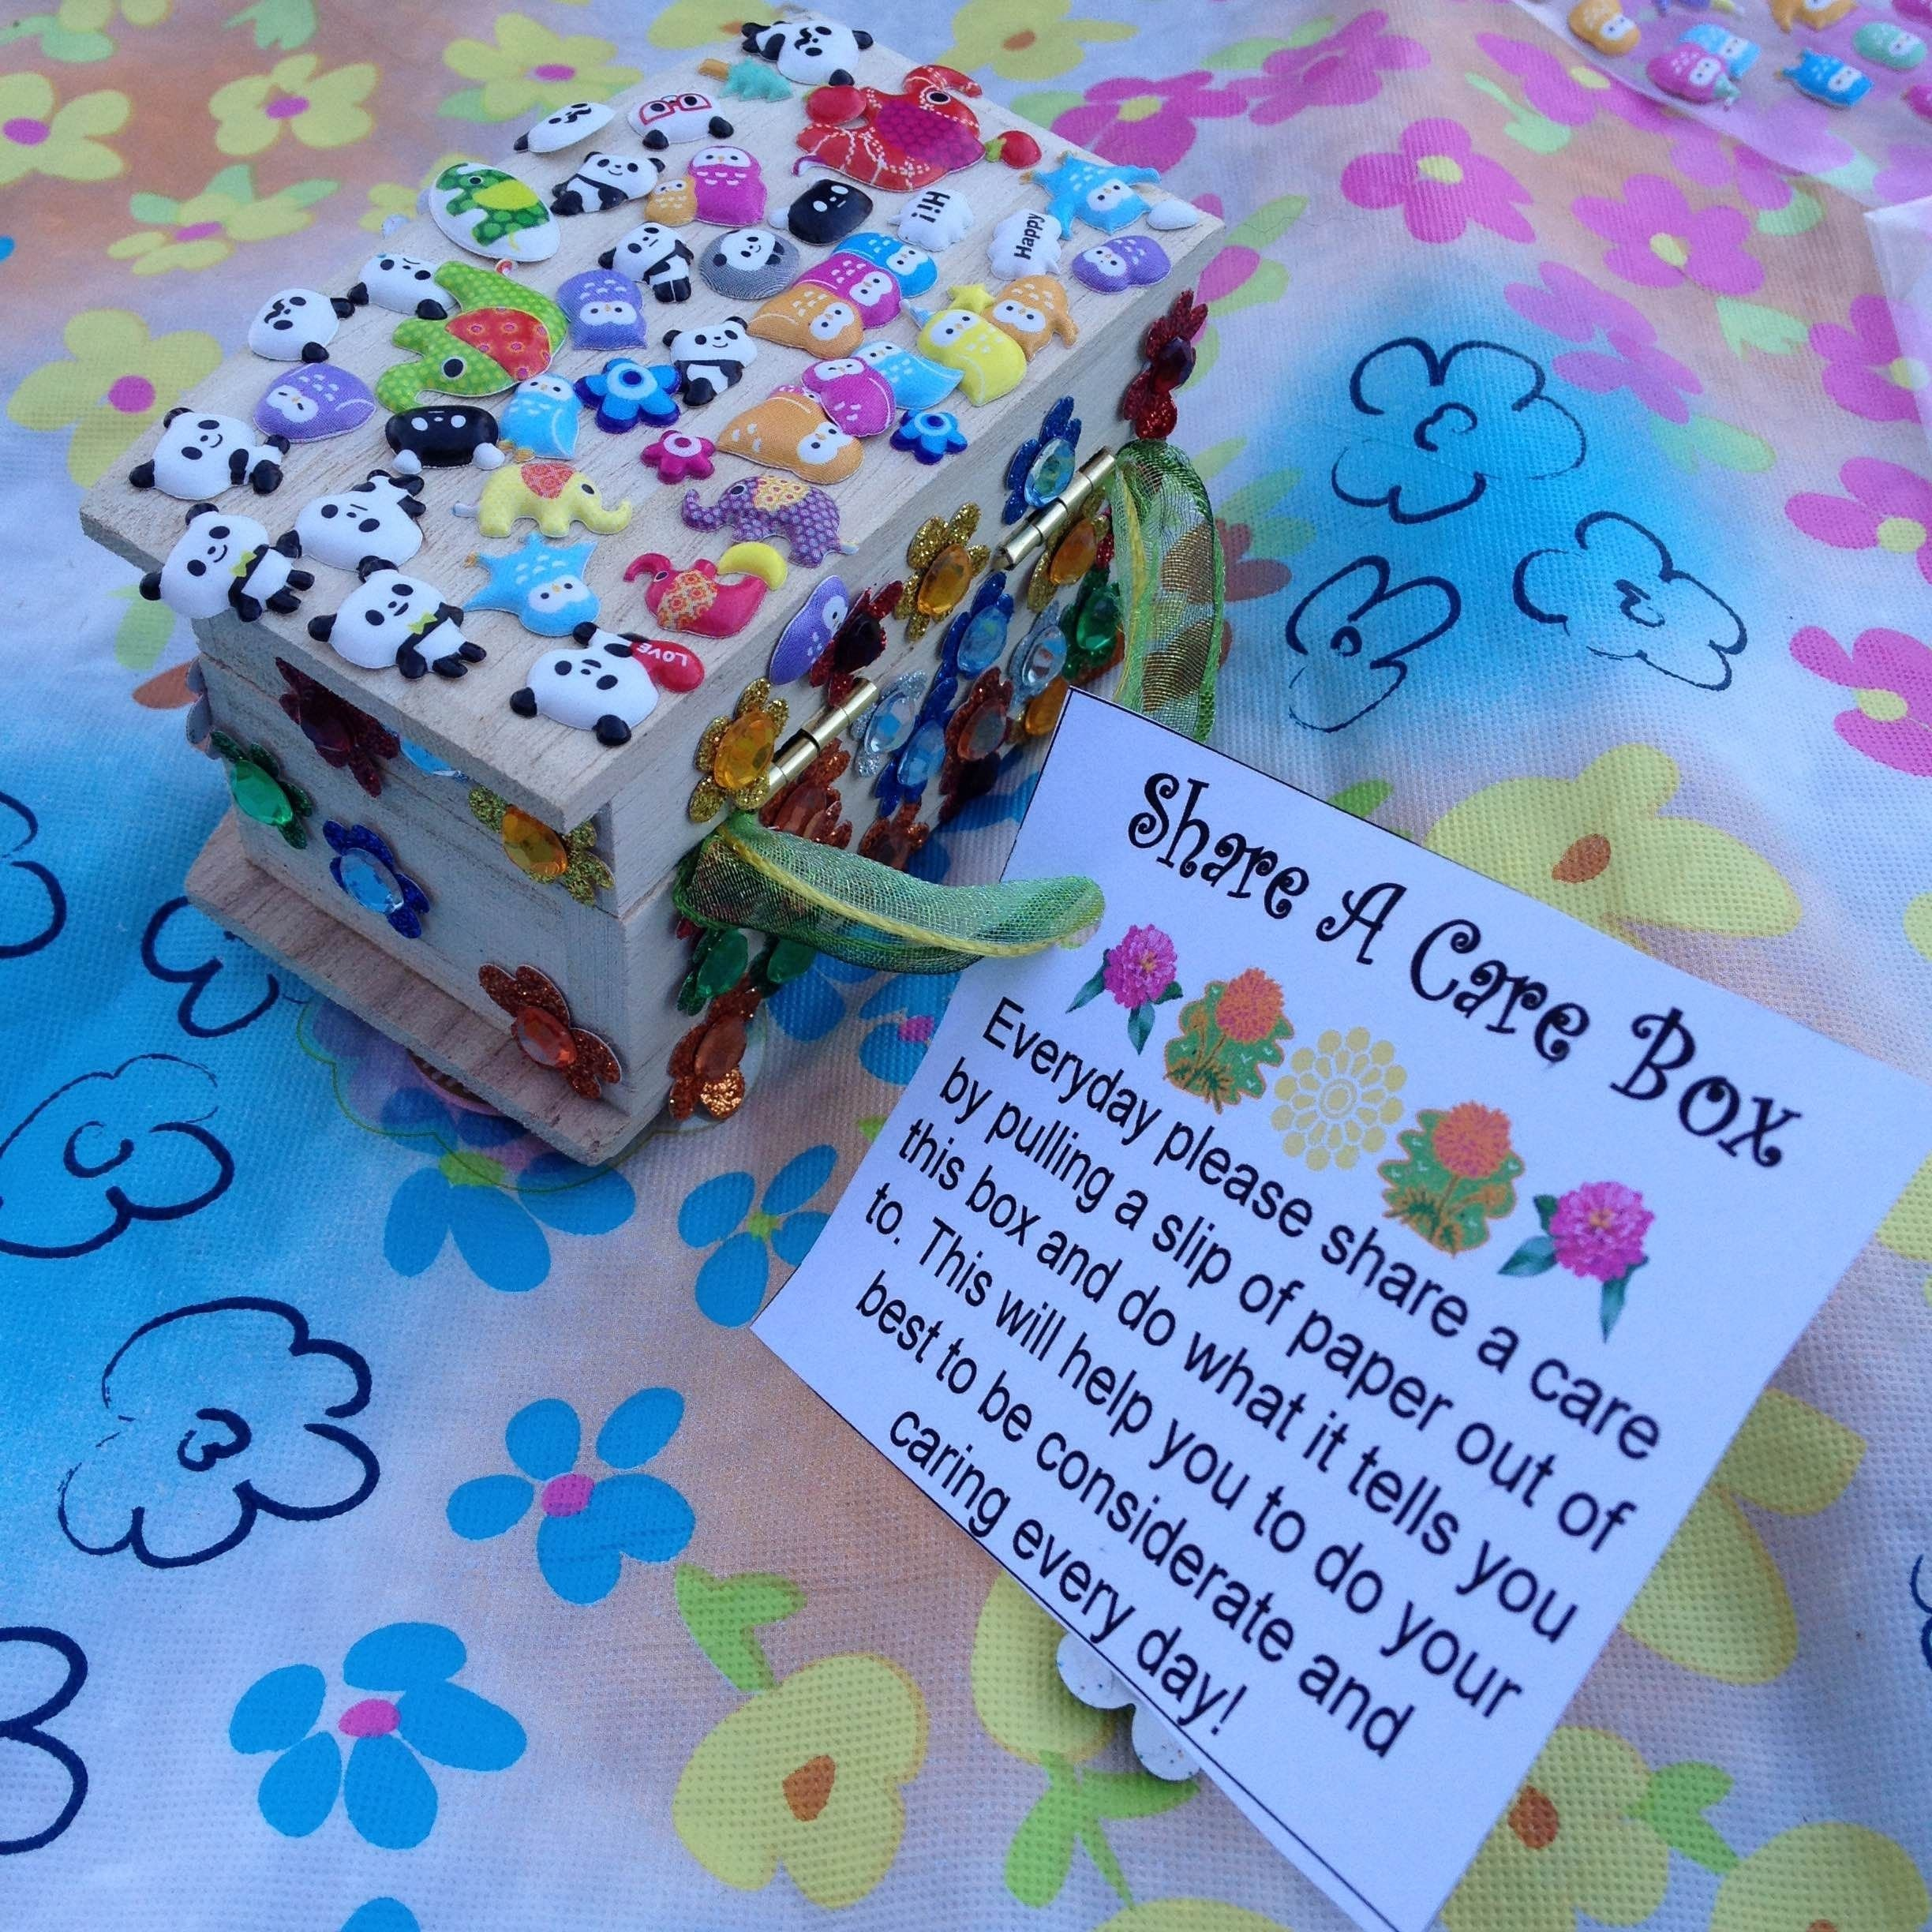 10 Attractive Considerate And Caring Daisy Petal Ideas idea for the spring green daisy petal considerate and caring have